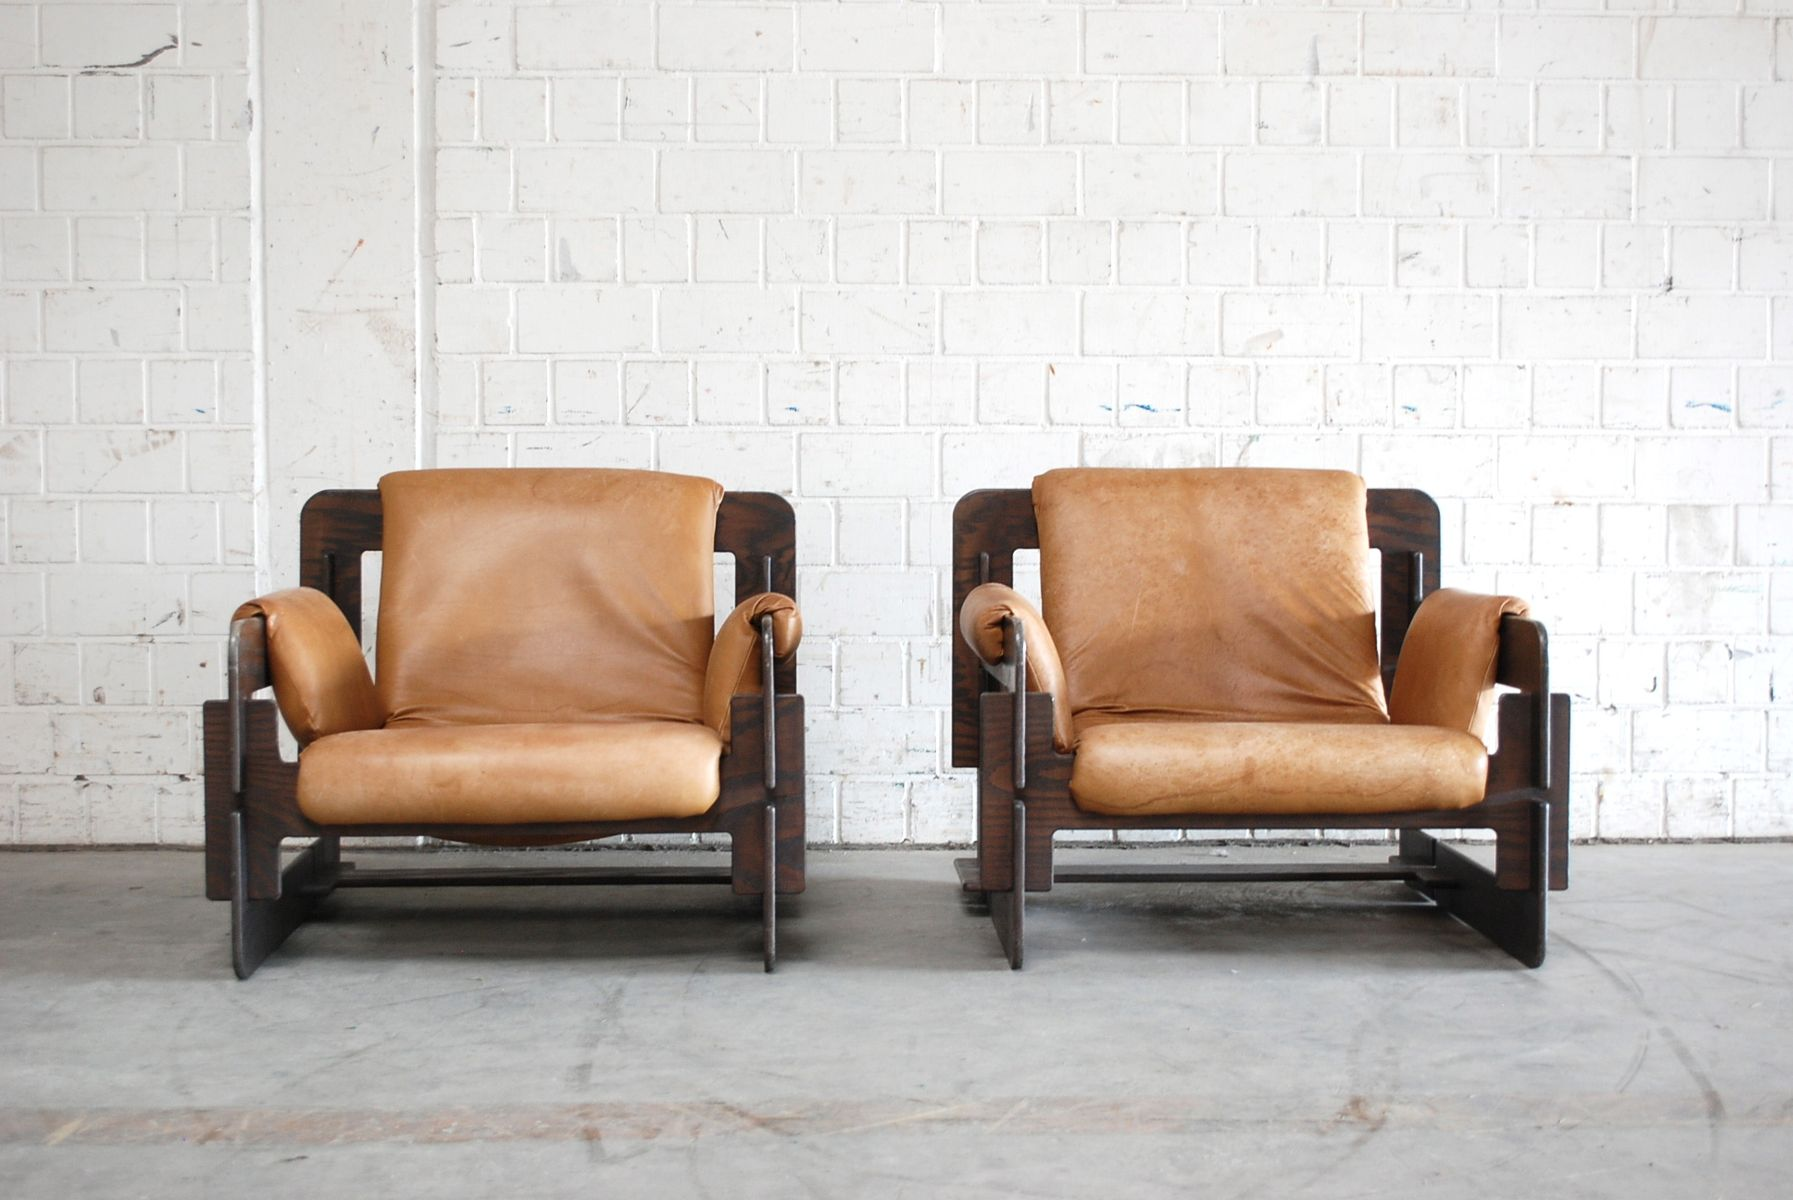 Vintage cognac rover lounge armchairs by arne jacobsen for for Cognac design